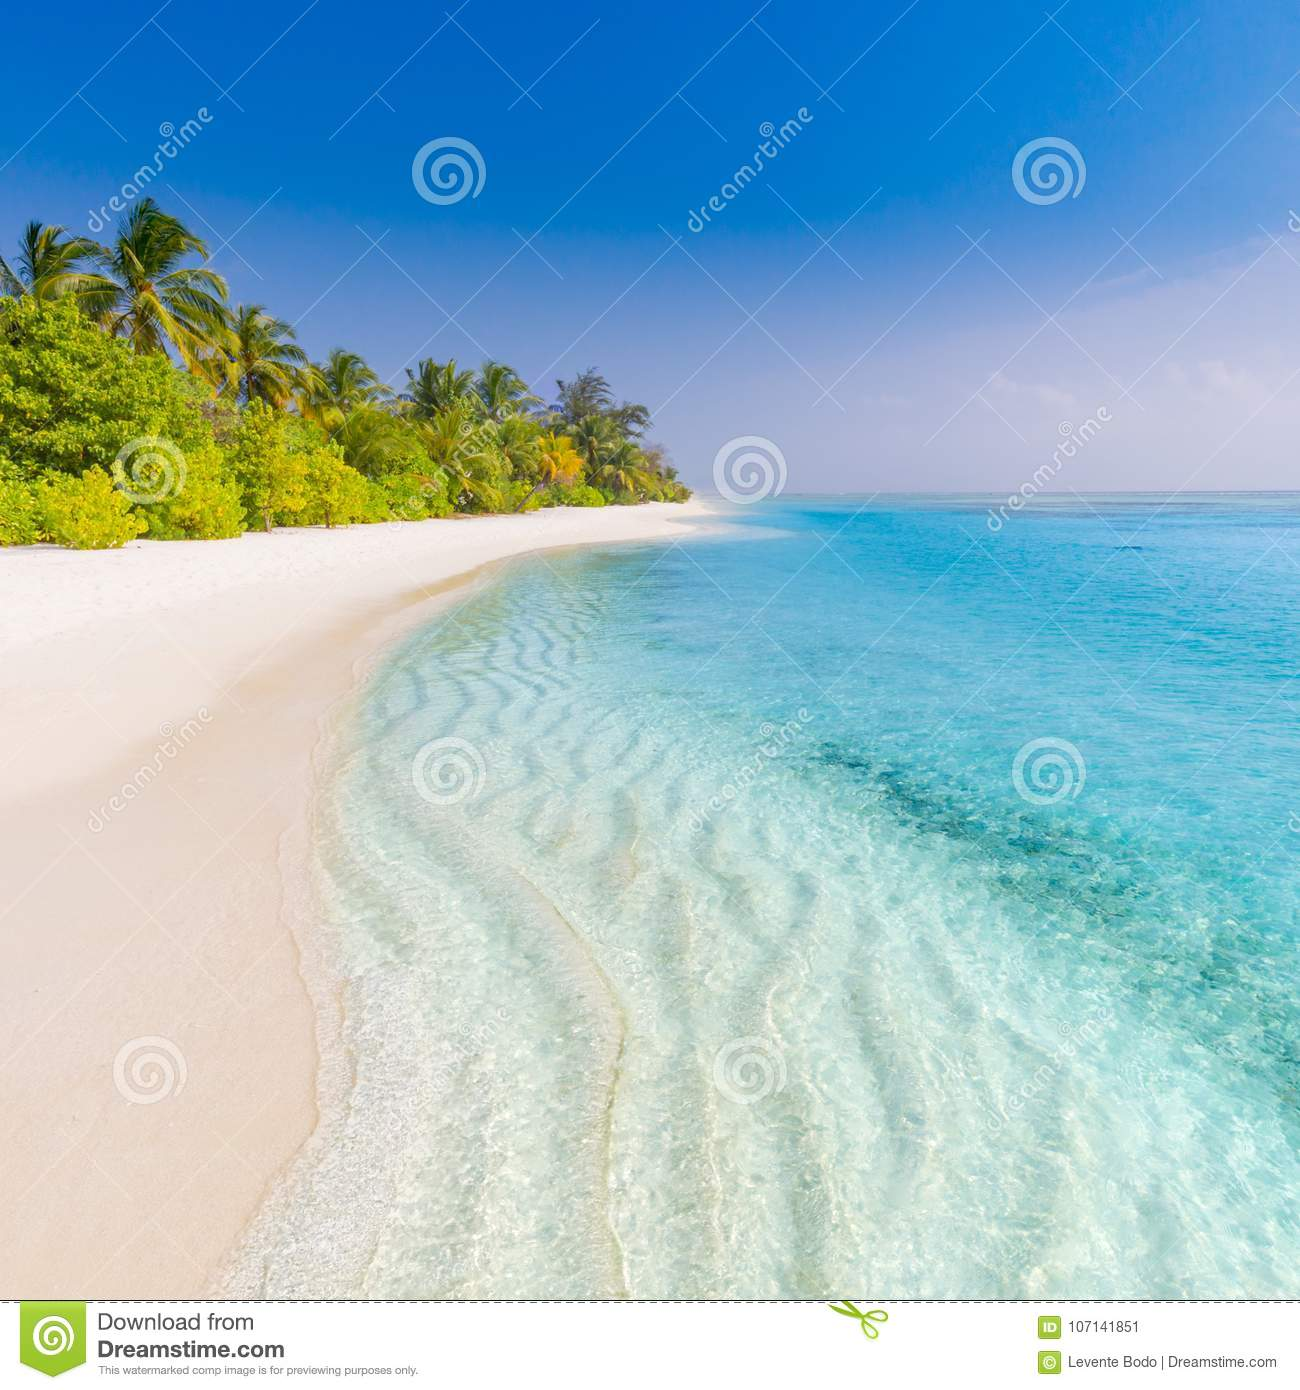 Sand Beach In Summer Sky Background: Summer Beach Banner Background. Soft Sand And Endless Sea